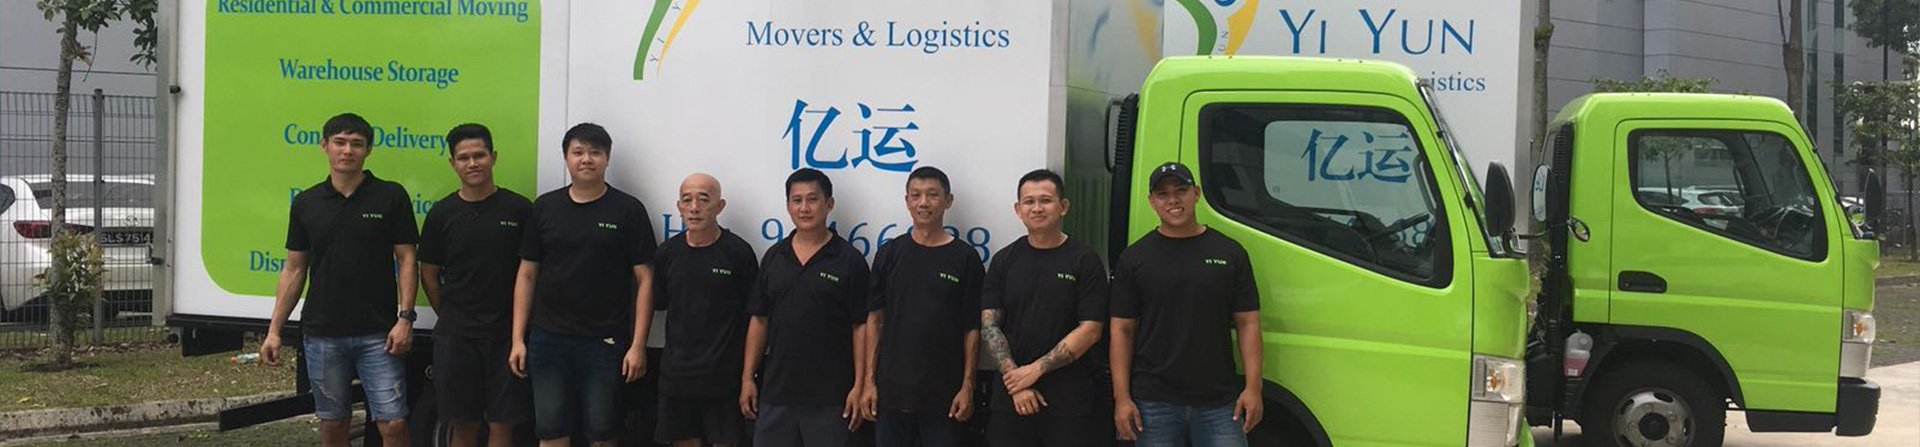 Moving & Storage Space Services in Singapore - Home Banner 1